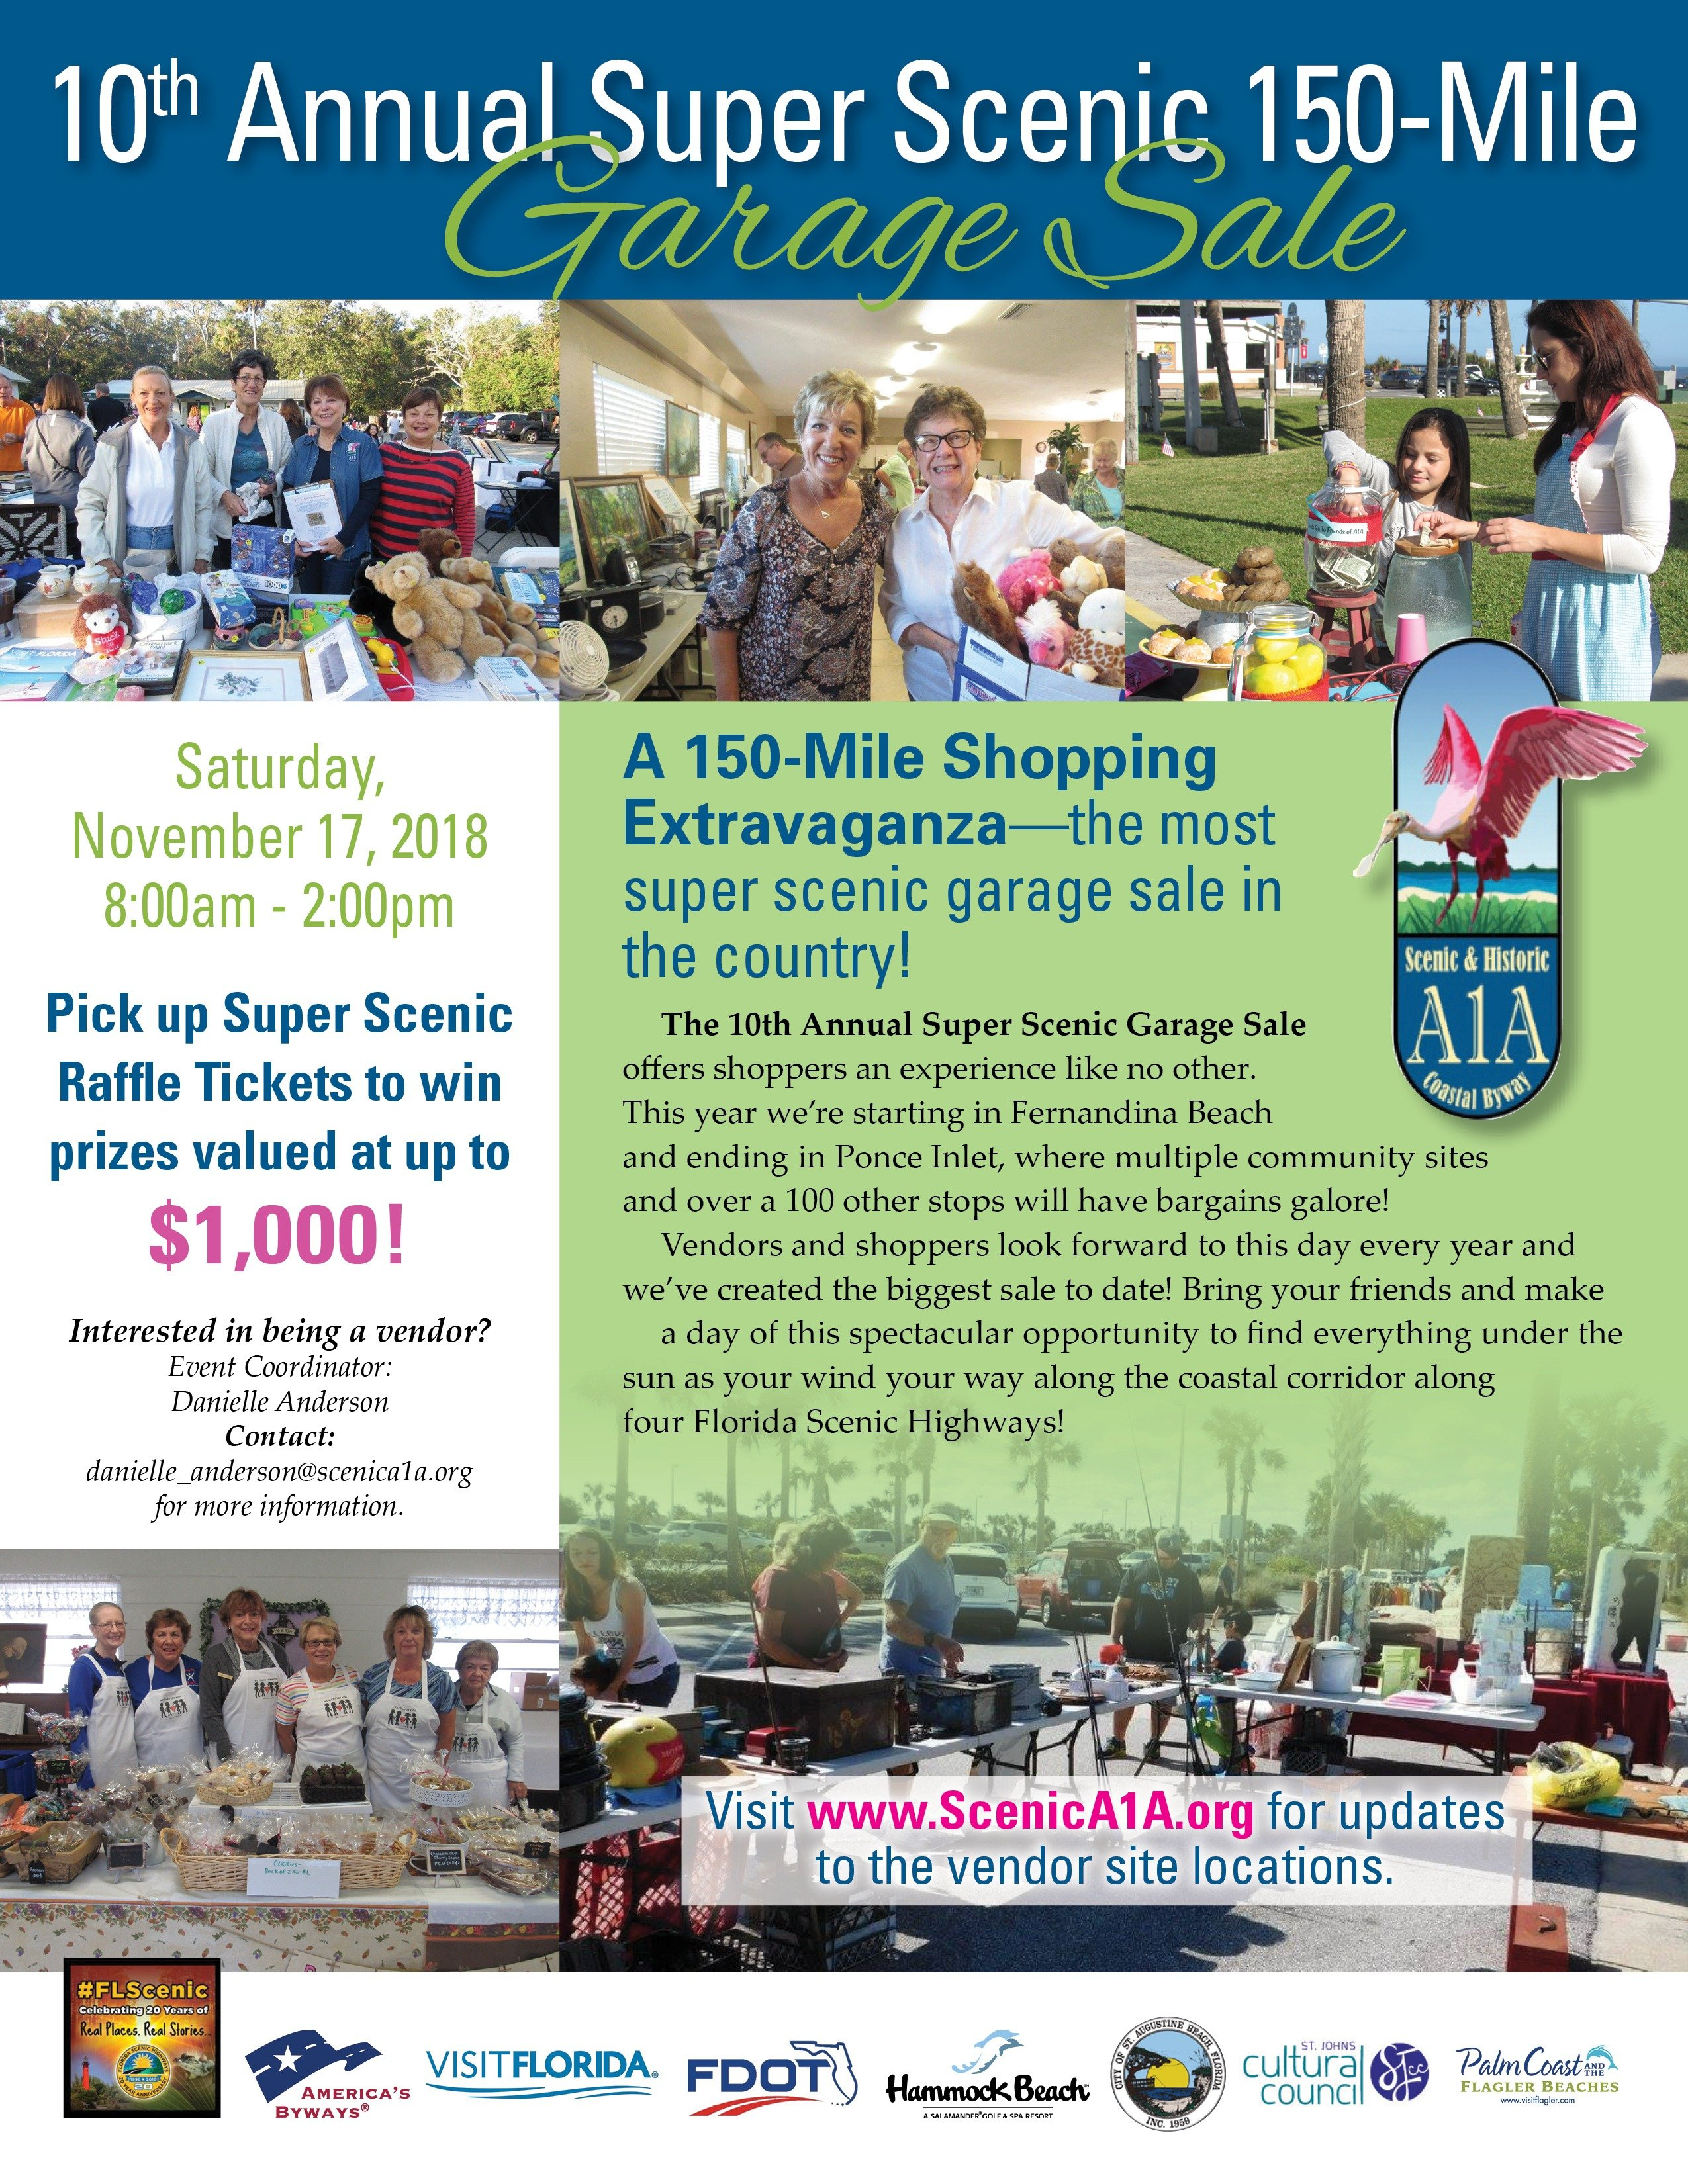 10th Annual Super Scenic 72 Mile Garage Sale | Florida